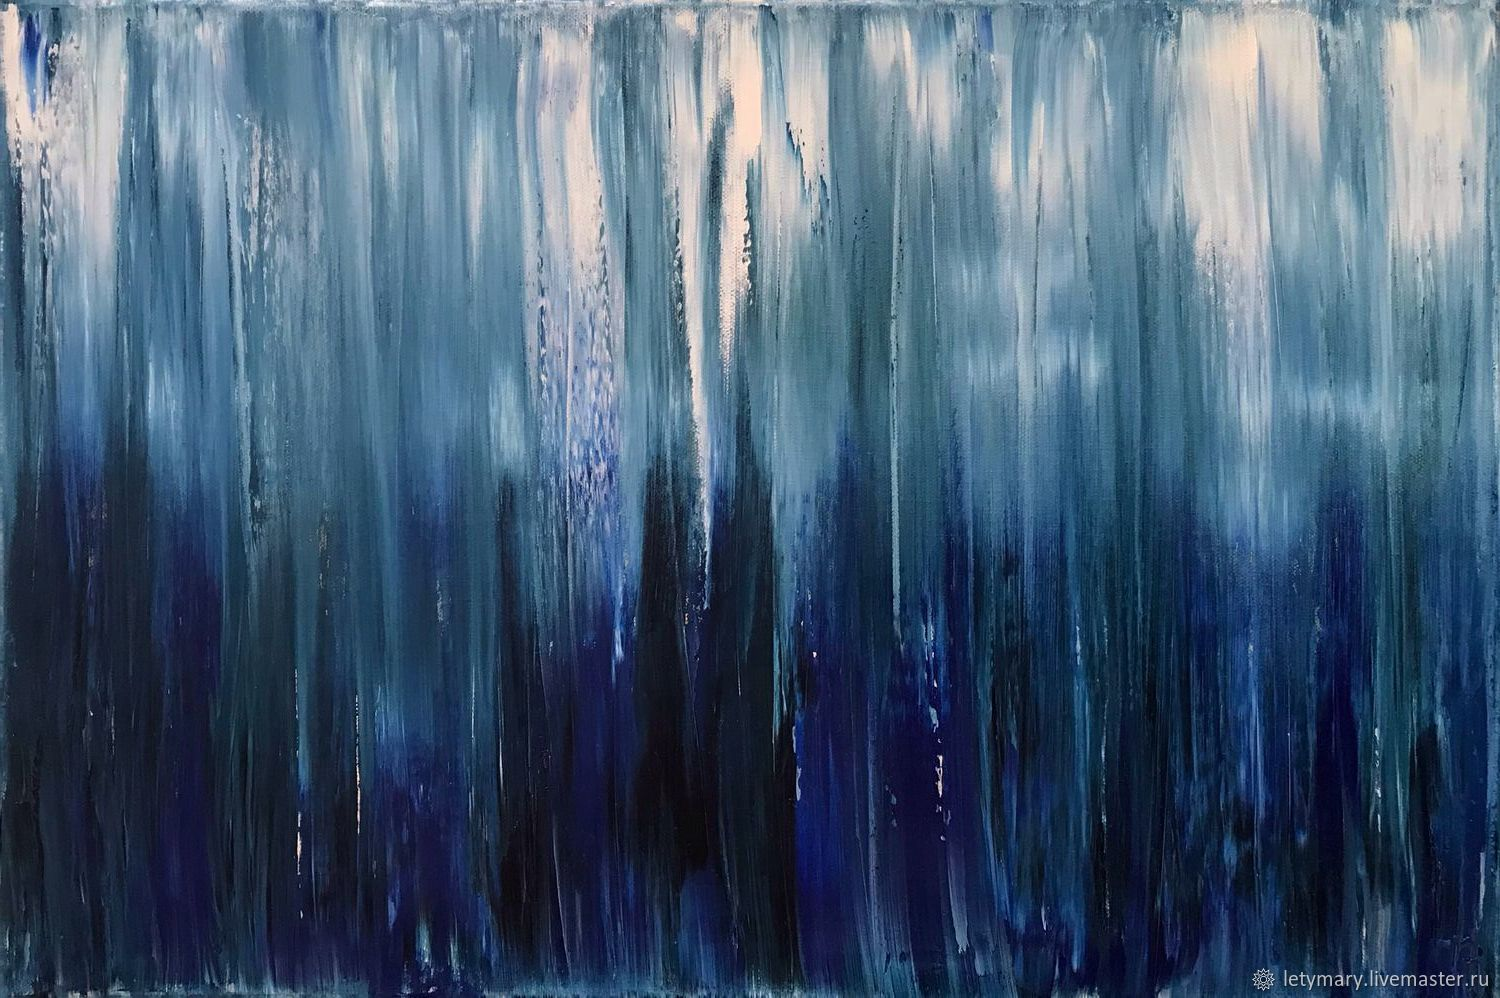 Abstract oil painting in blue shades 'You decide', Pictures, Novosibirsk,  Фото №1